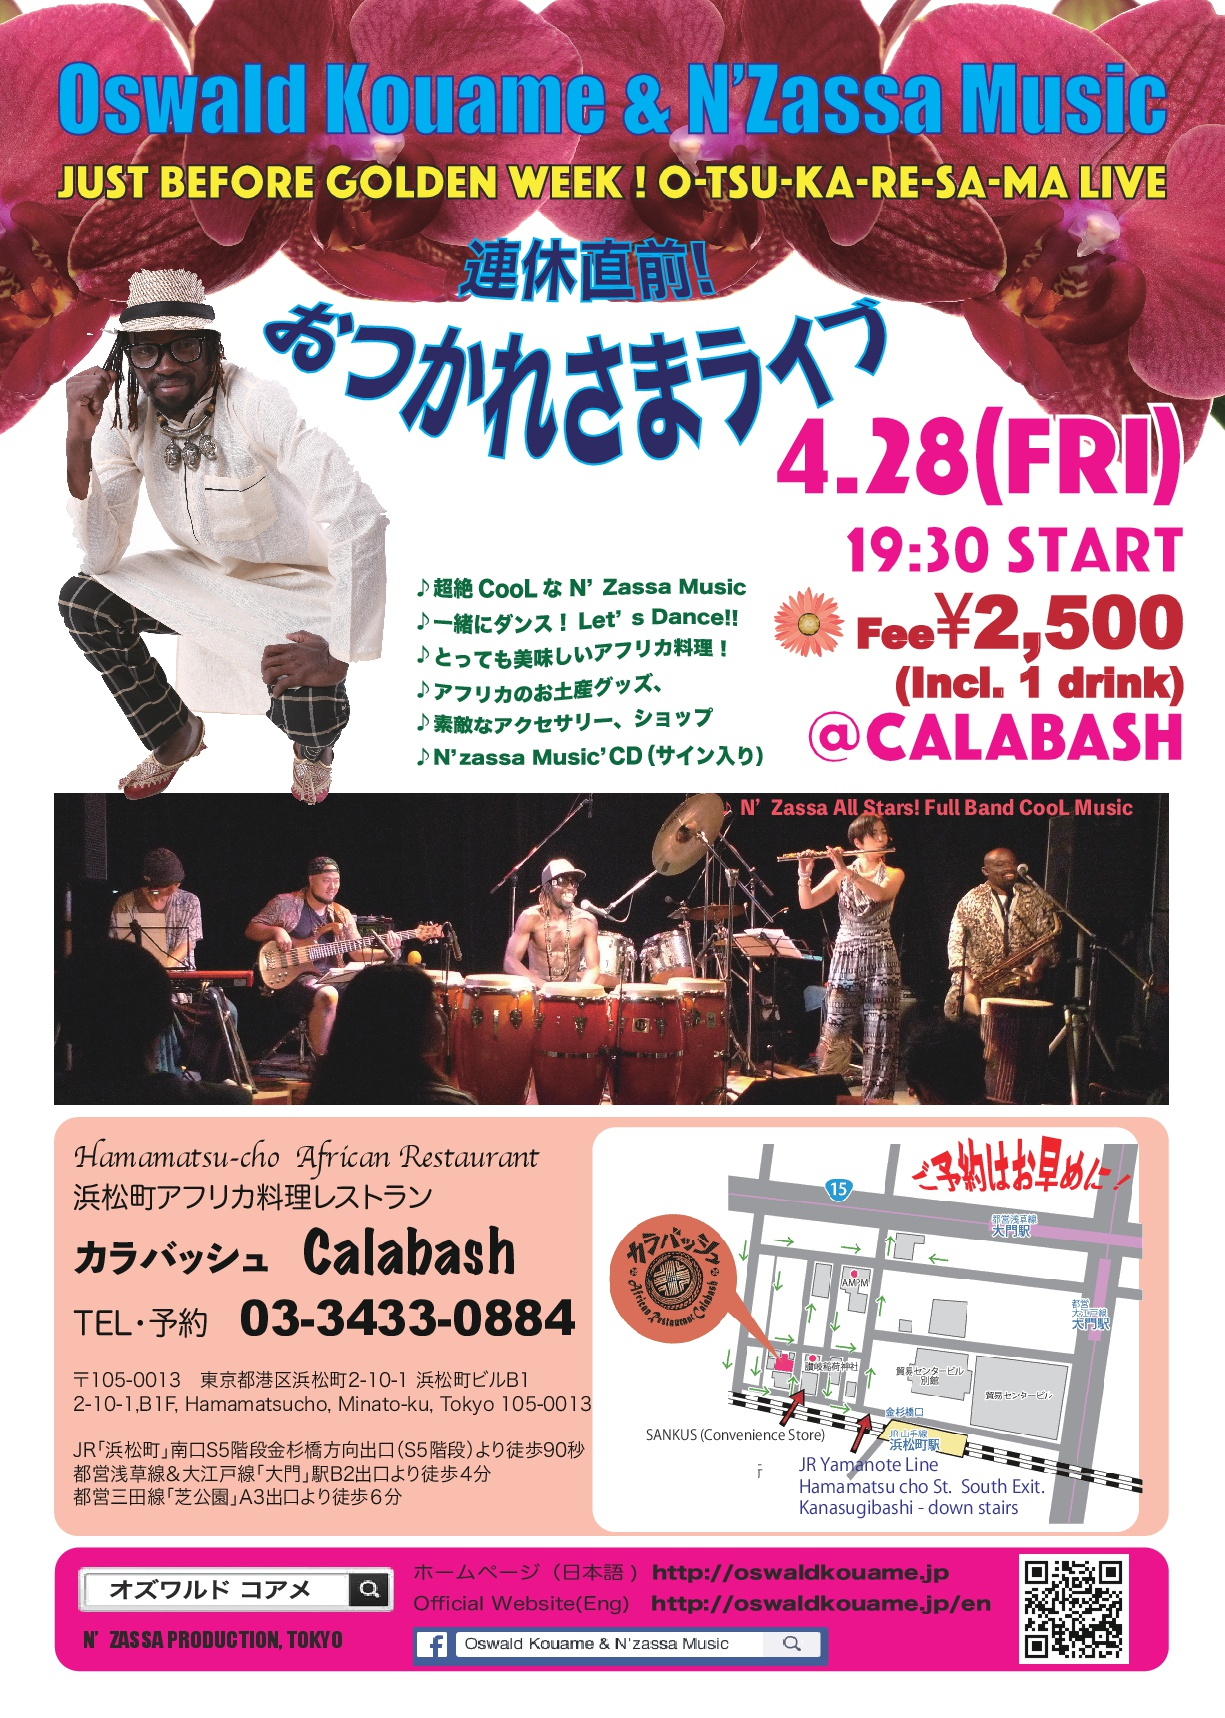 Apr.28 (Fri) JUST BEFORE GOLDEN WEEK!O-TSU-KA-RE-SA-MA live' @Calabash